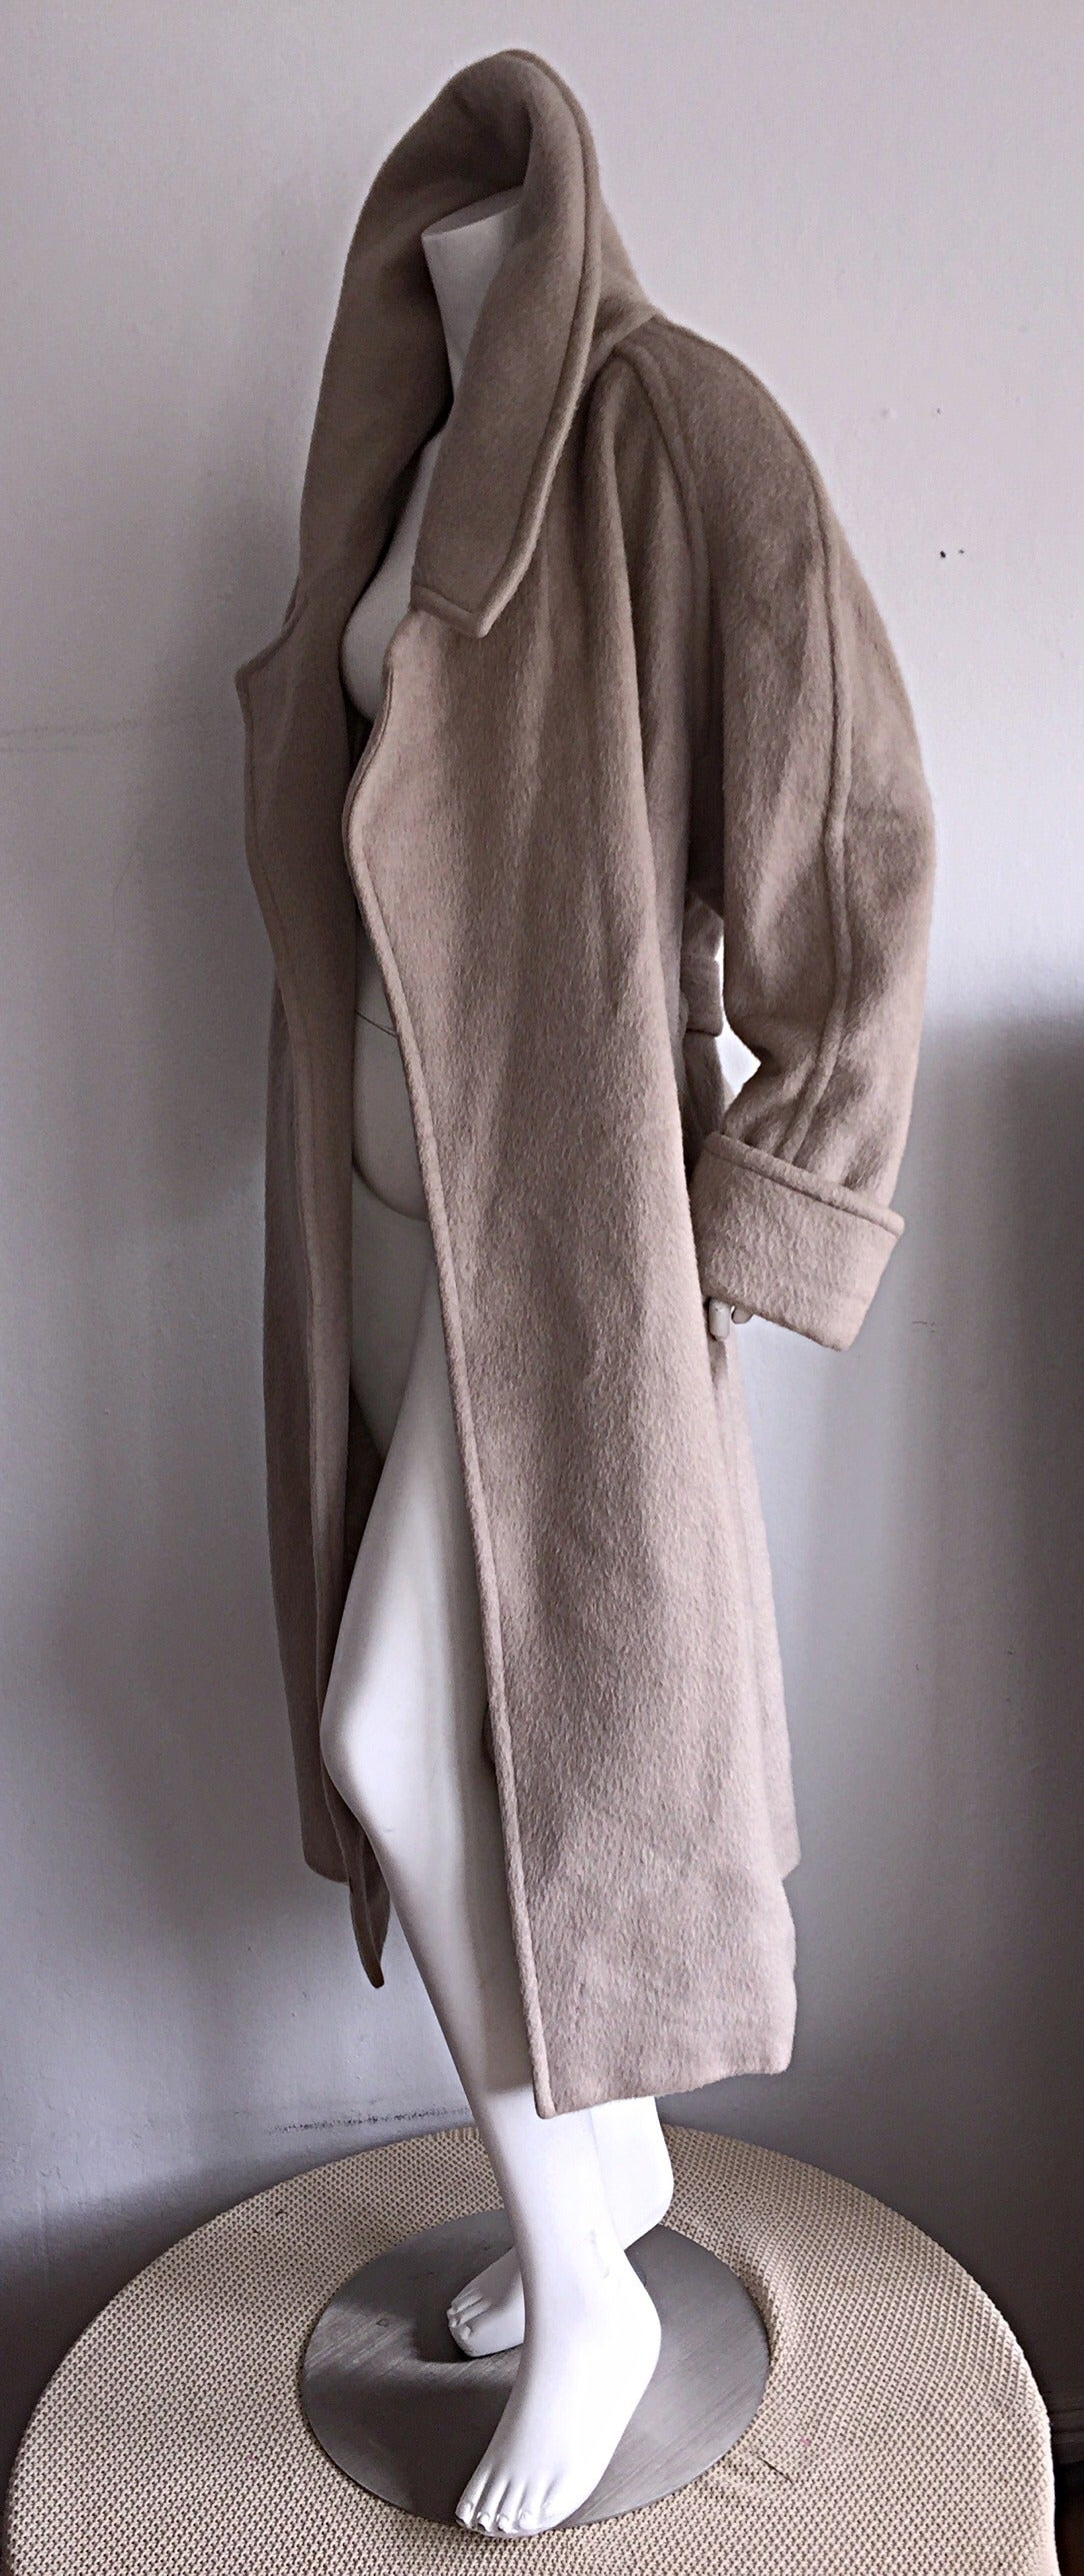 Stylish Vintage Guy Laroche Alpaca + Wool Taupe Wrap Blanket Jacket / Coat For Sale 3